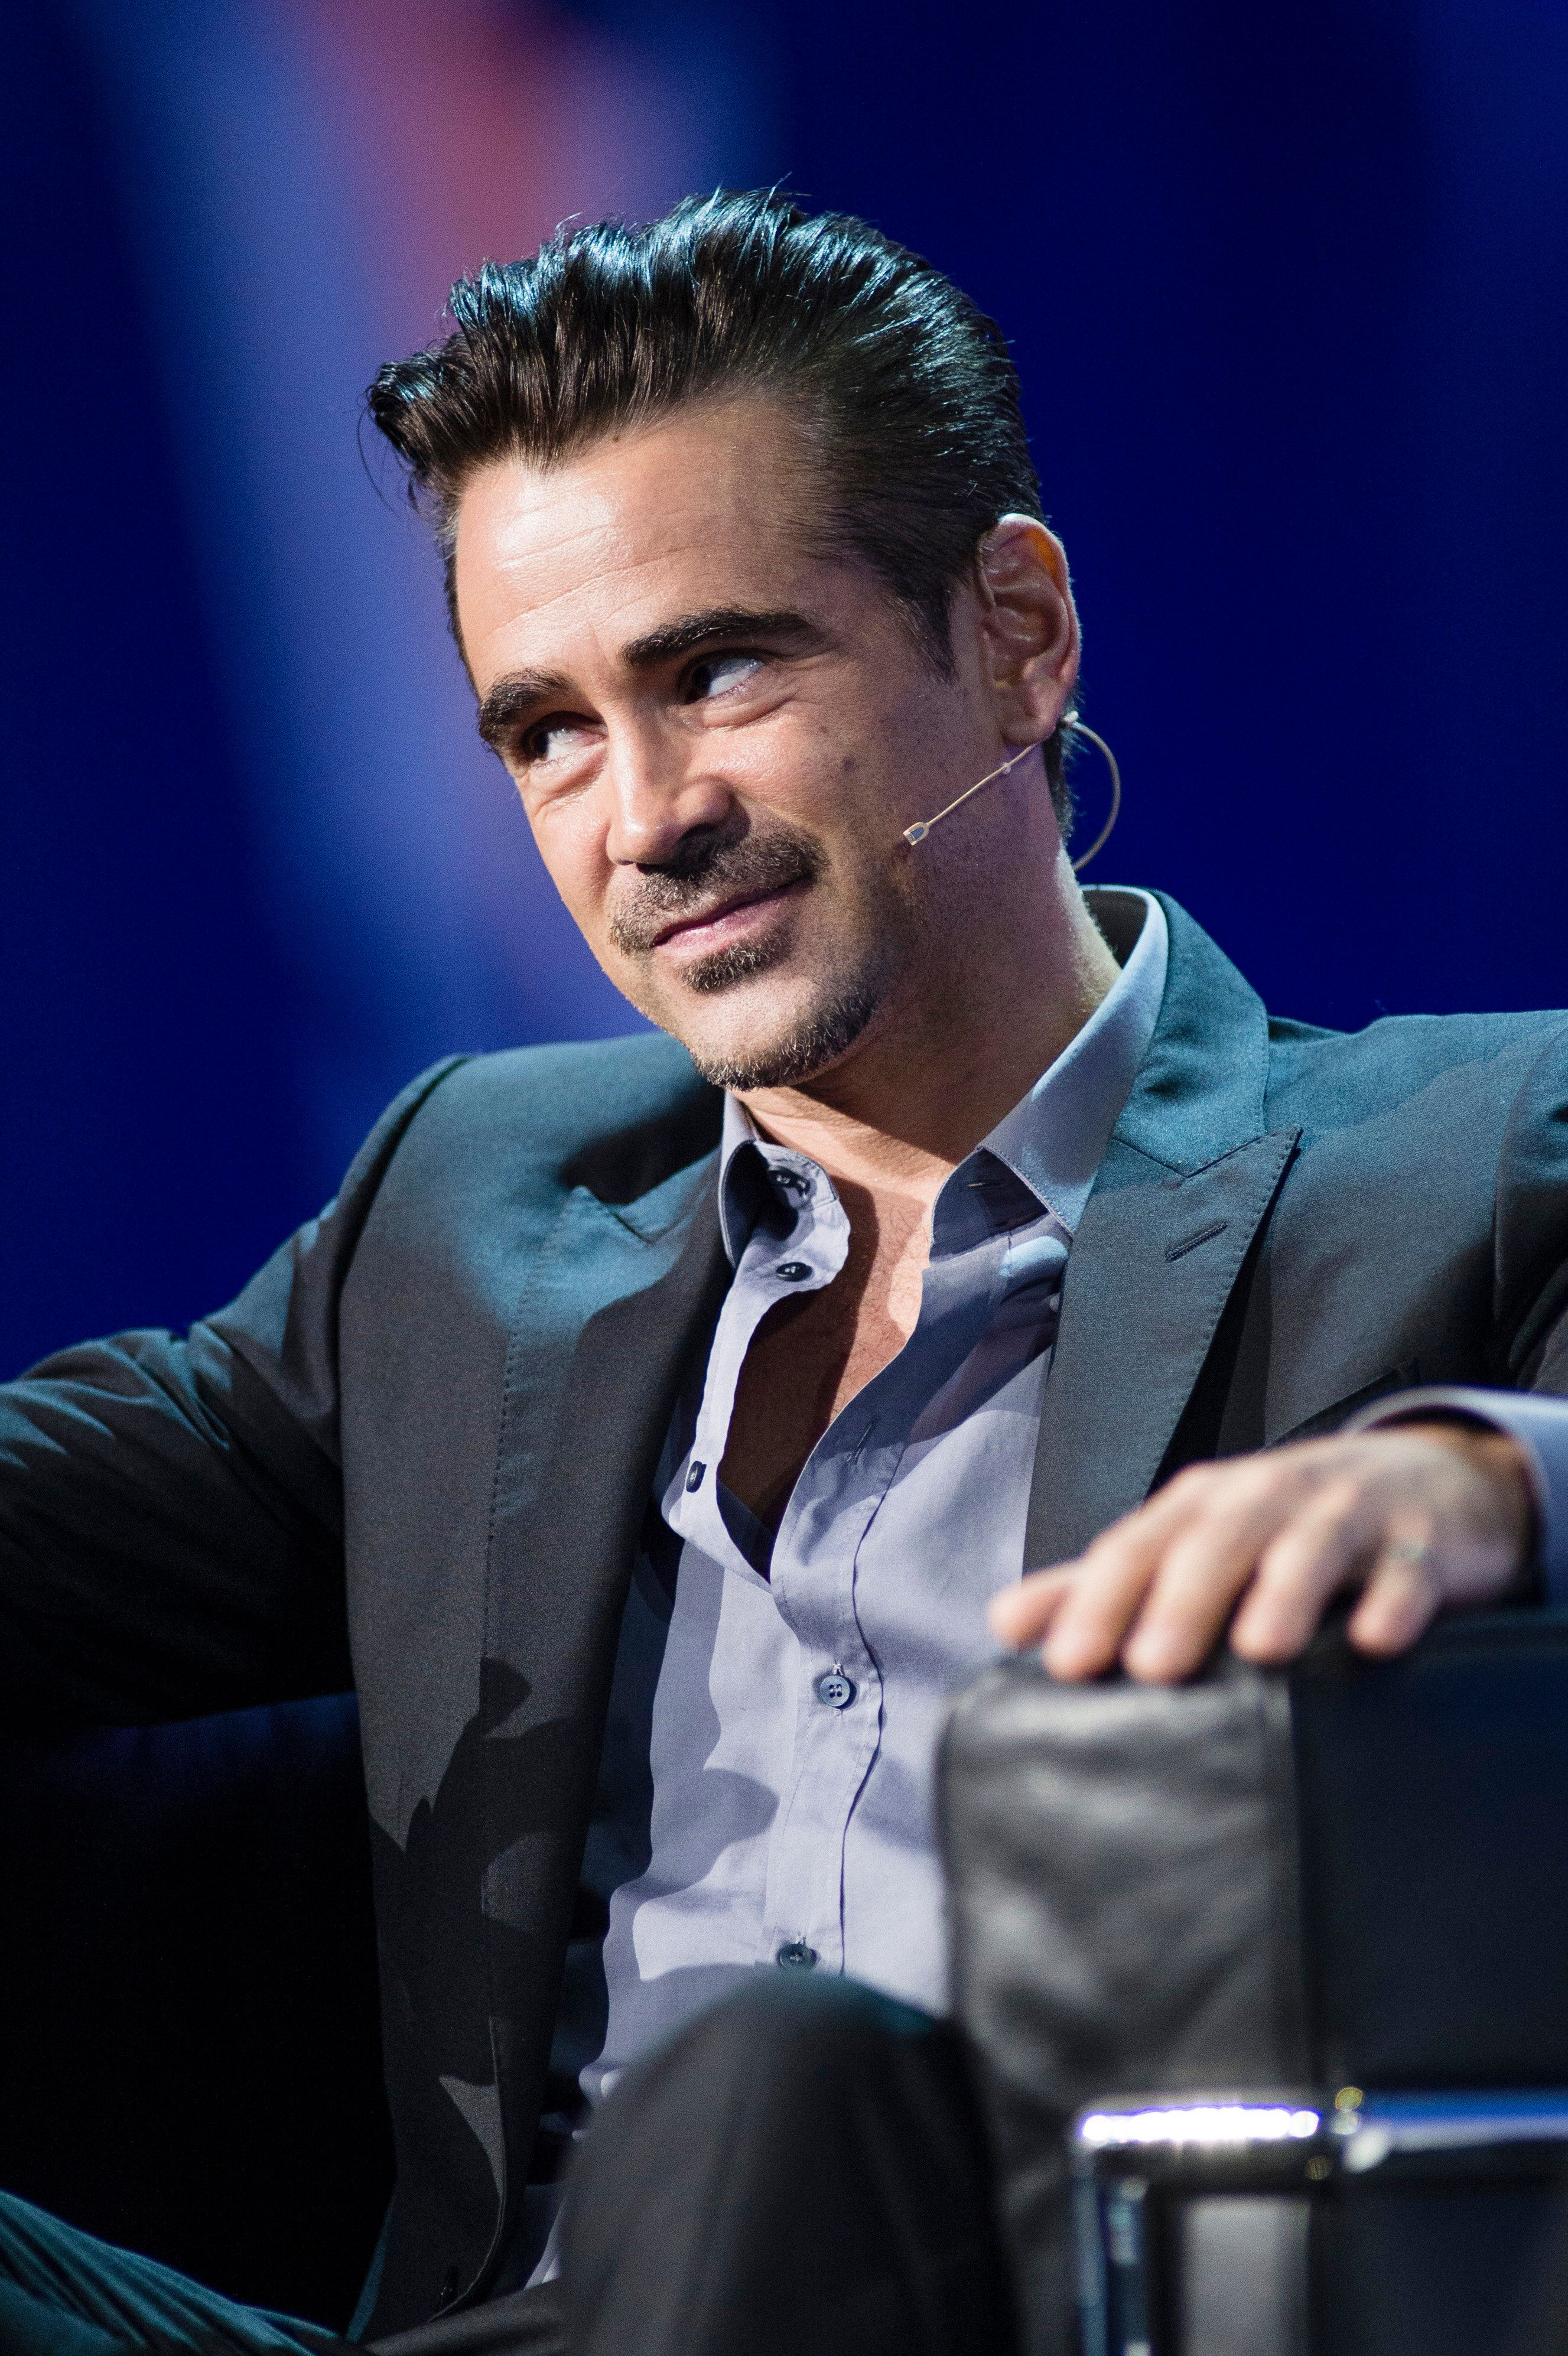 LONDON, ENGLAND - MAY 12:  Colin Farrell speaks at Adobe EMEA Summit at ExCel on May 12, 2016 in London, England.  (Photo by Jeff Spicer/Getty Images)